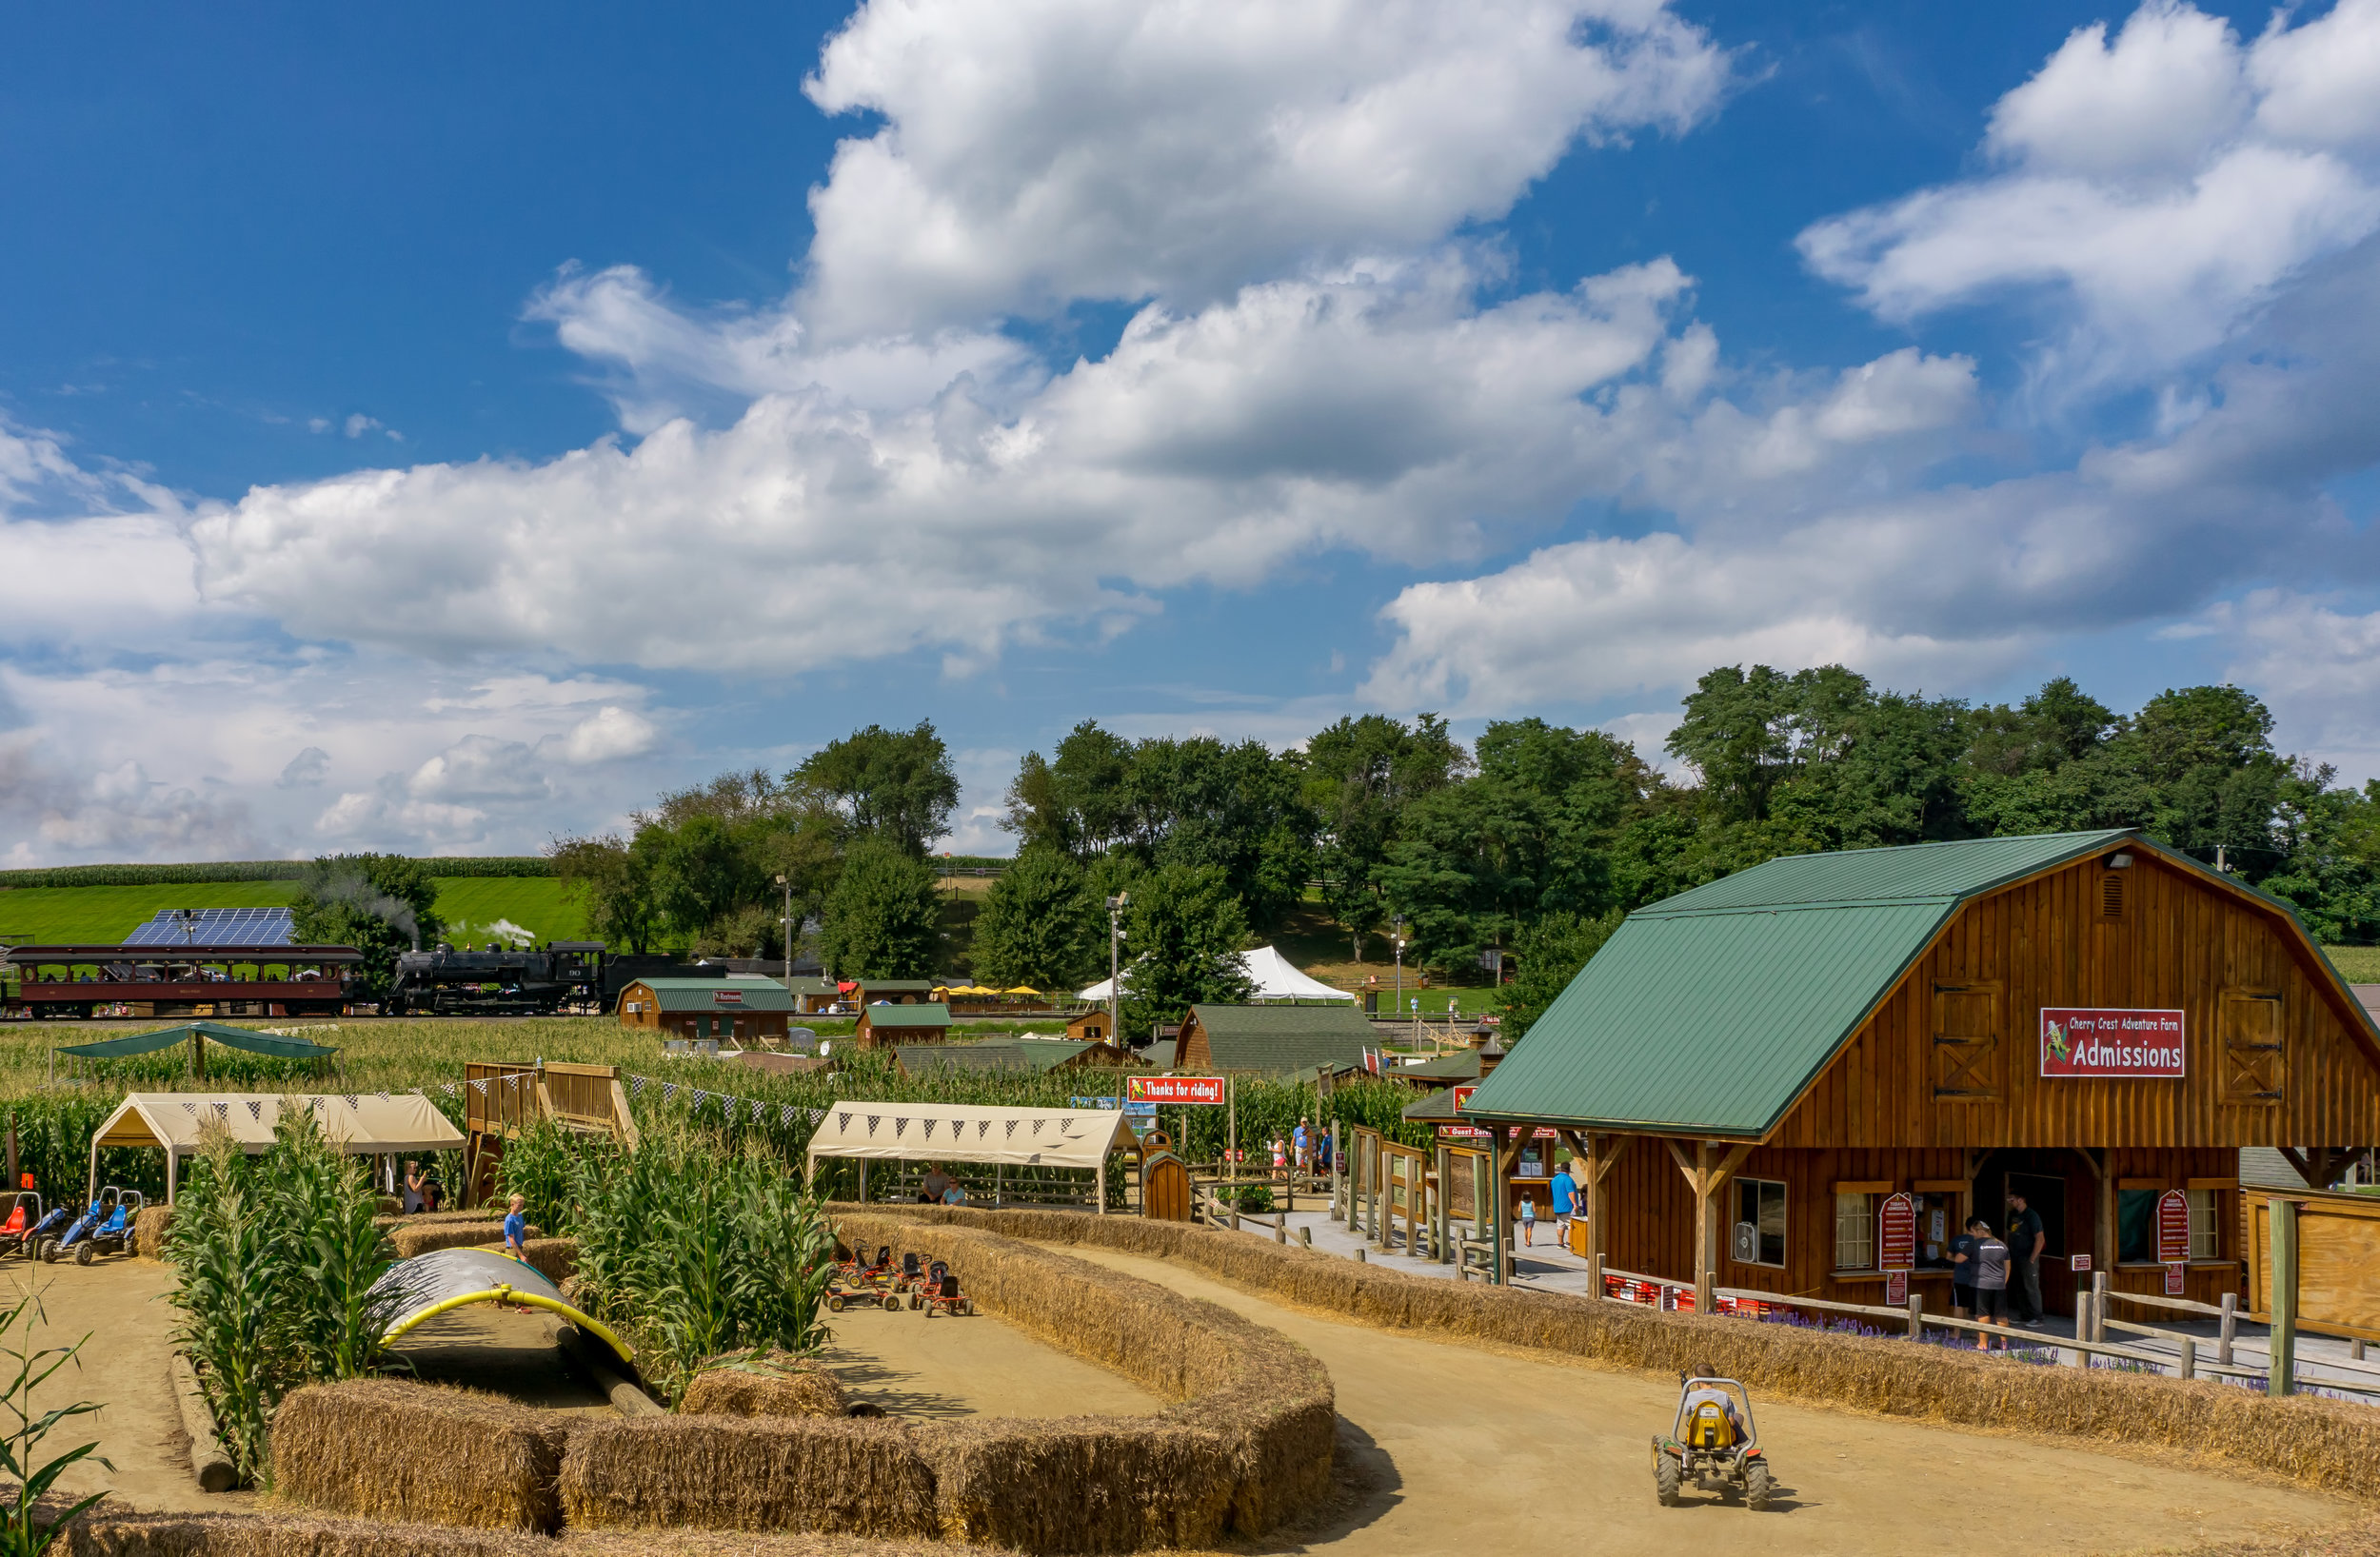 Cherry Crest Adventure Farm - Just in time for the harvest season. Come discover one of Lancaster County's favorite October Destinations.